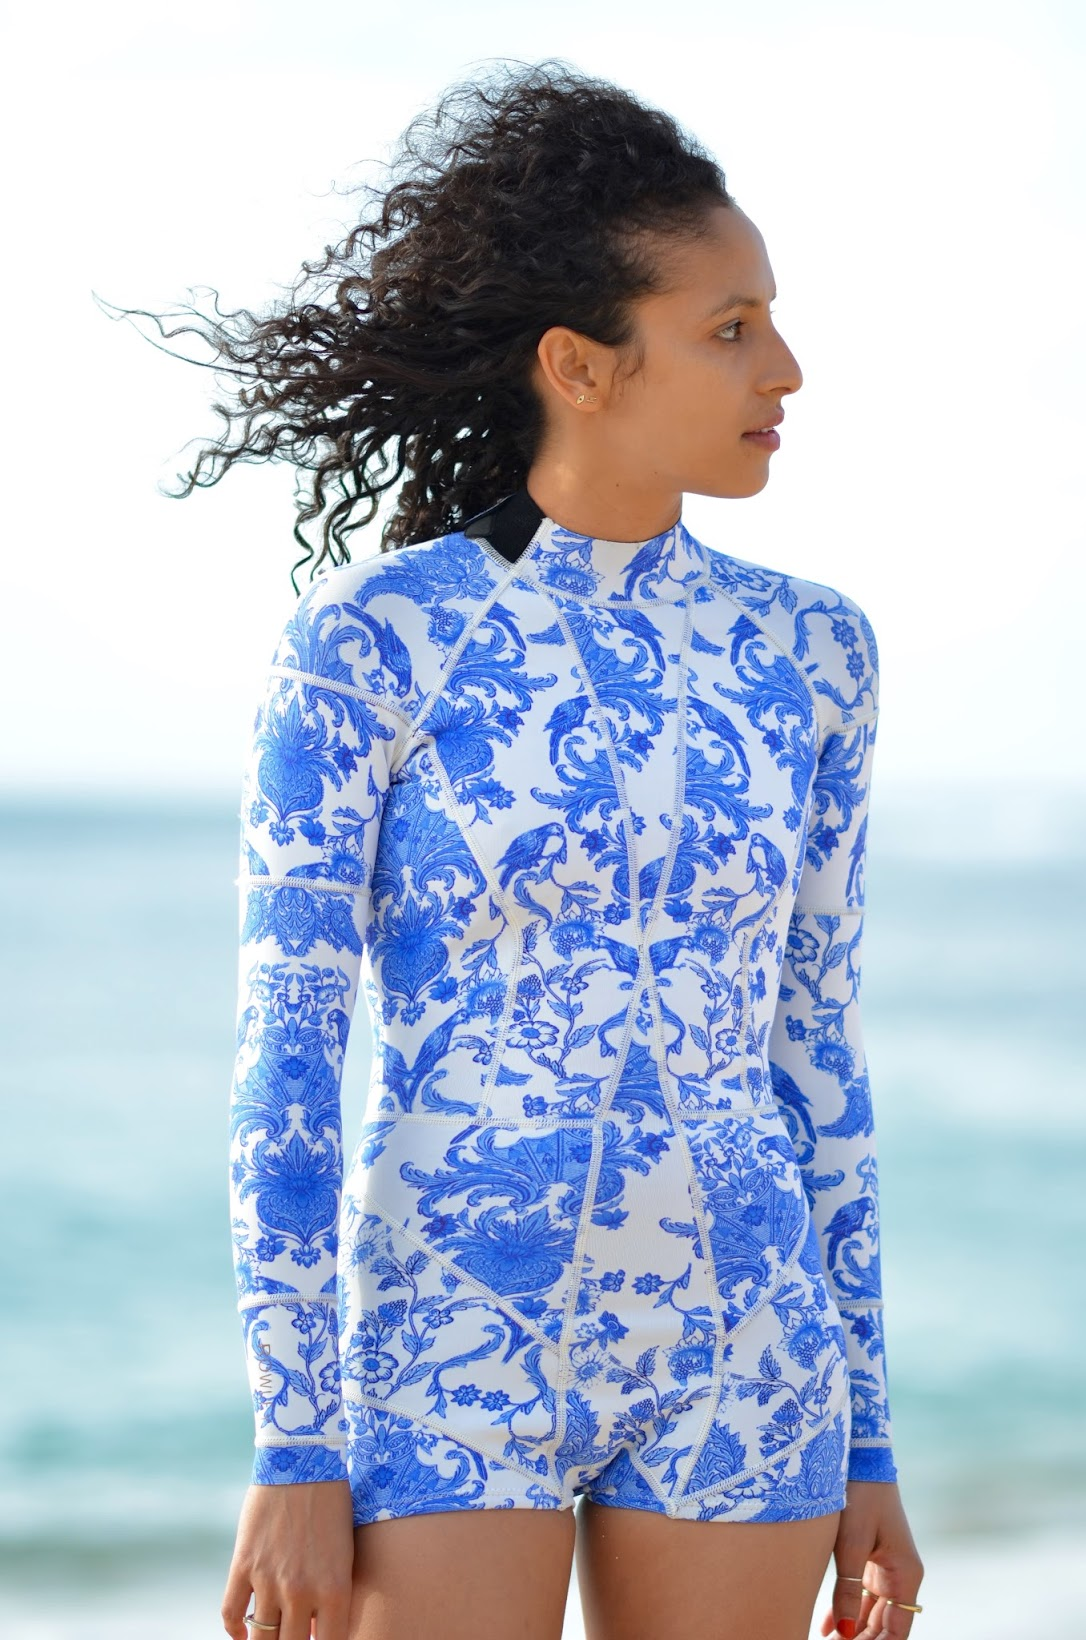 Cynthia Rowley wetsuit, blue ruffle crop top, sunset beach oahu, curly hair